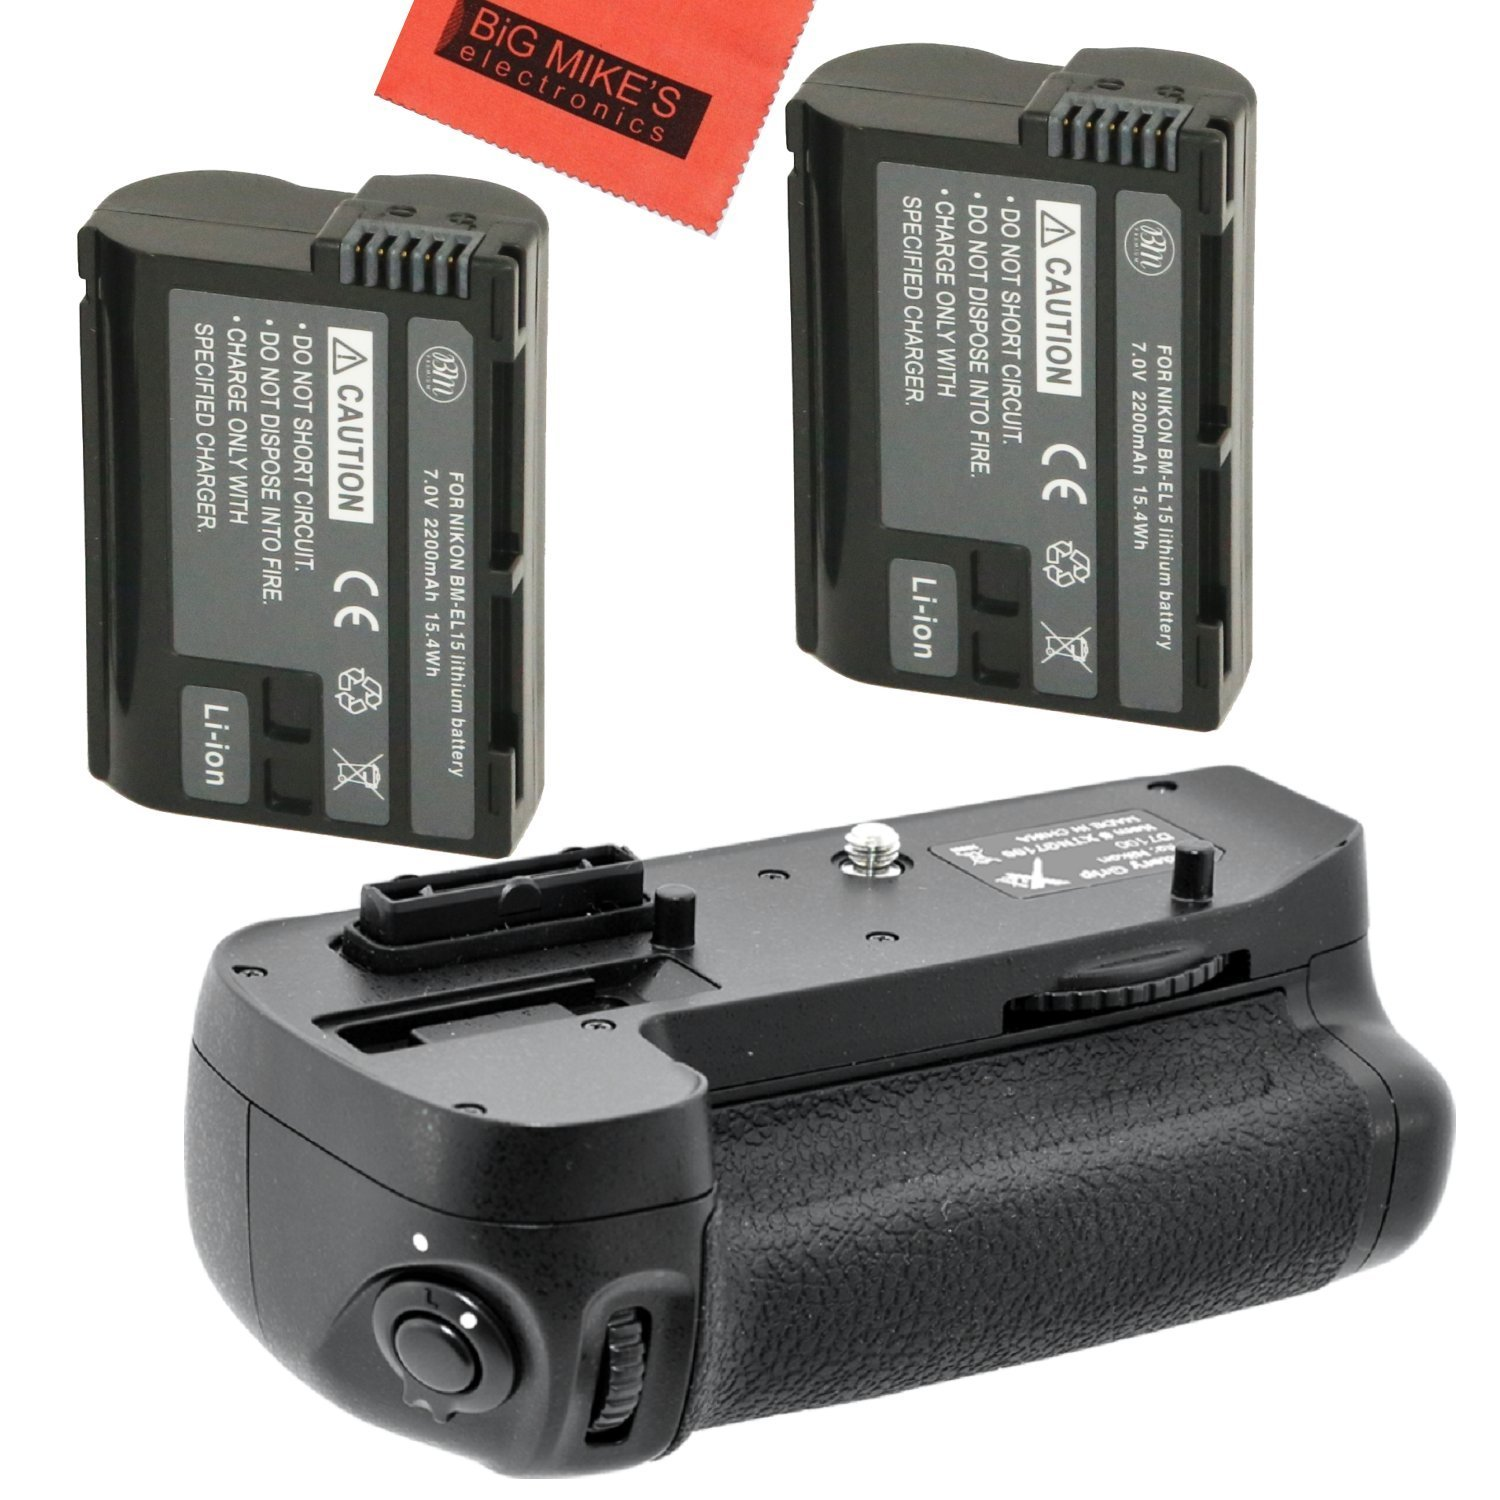 Battery Grip Kit For Nikon D7100 D7200 Digital Slr Imaging Products Parts And Controls D800 D800e Camera Includes Qty 2 Replacement En El15 Batteries Vertical More